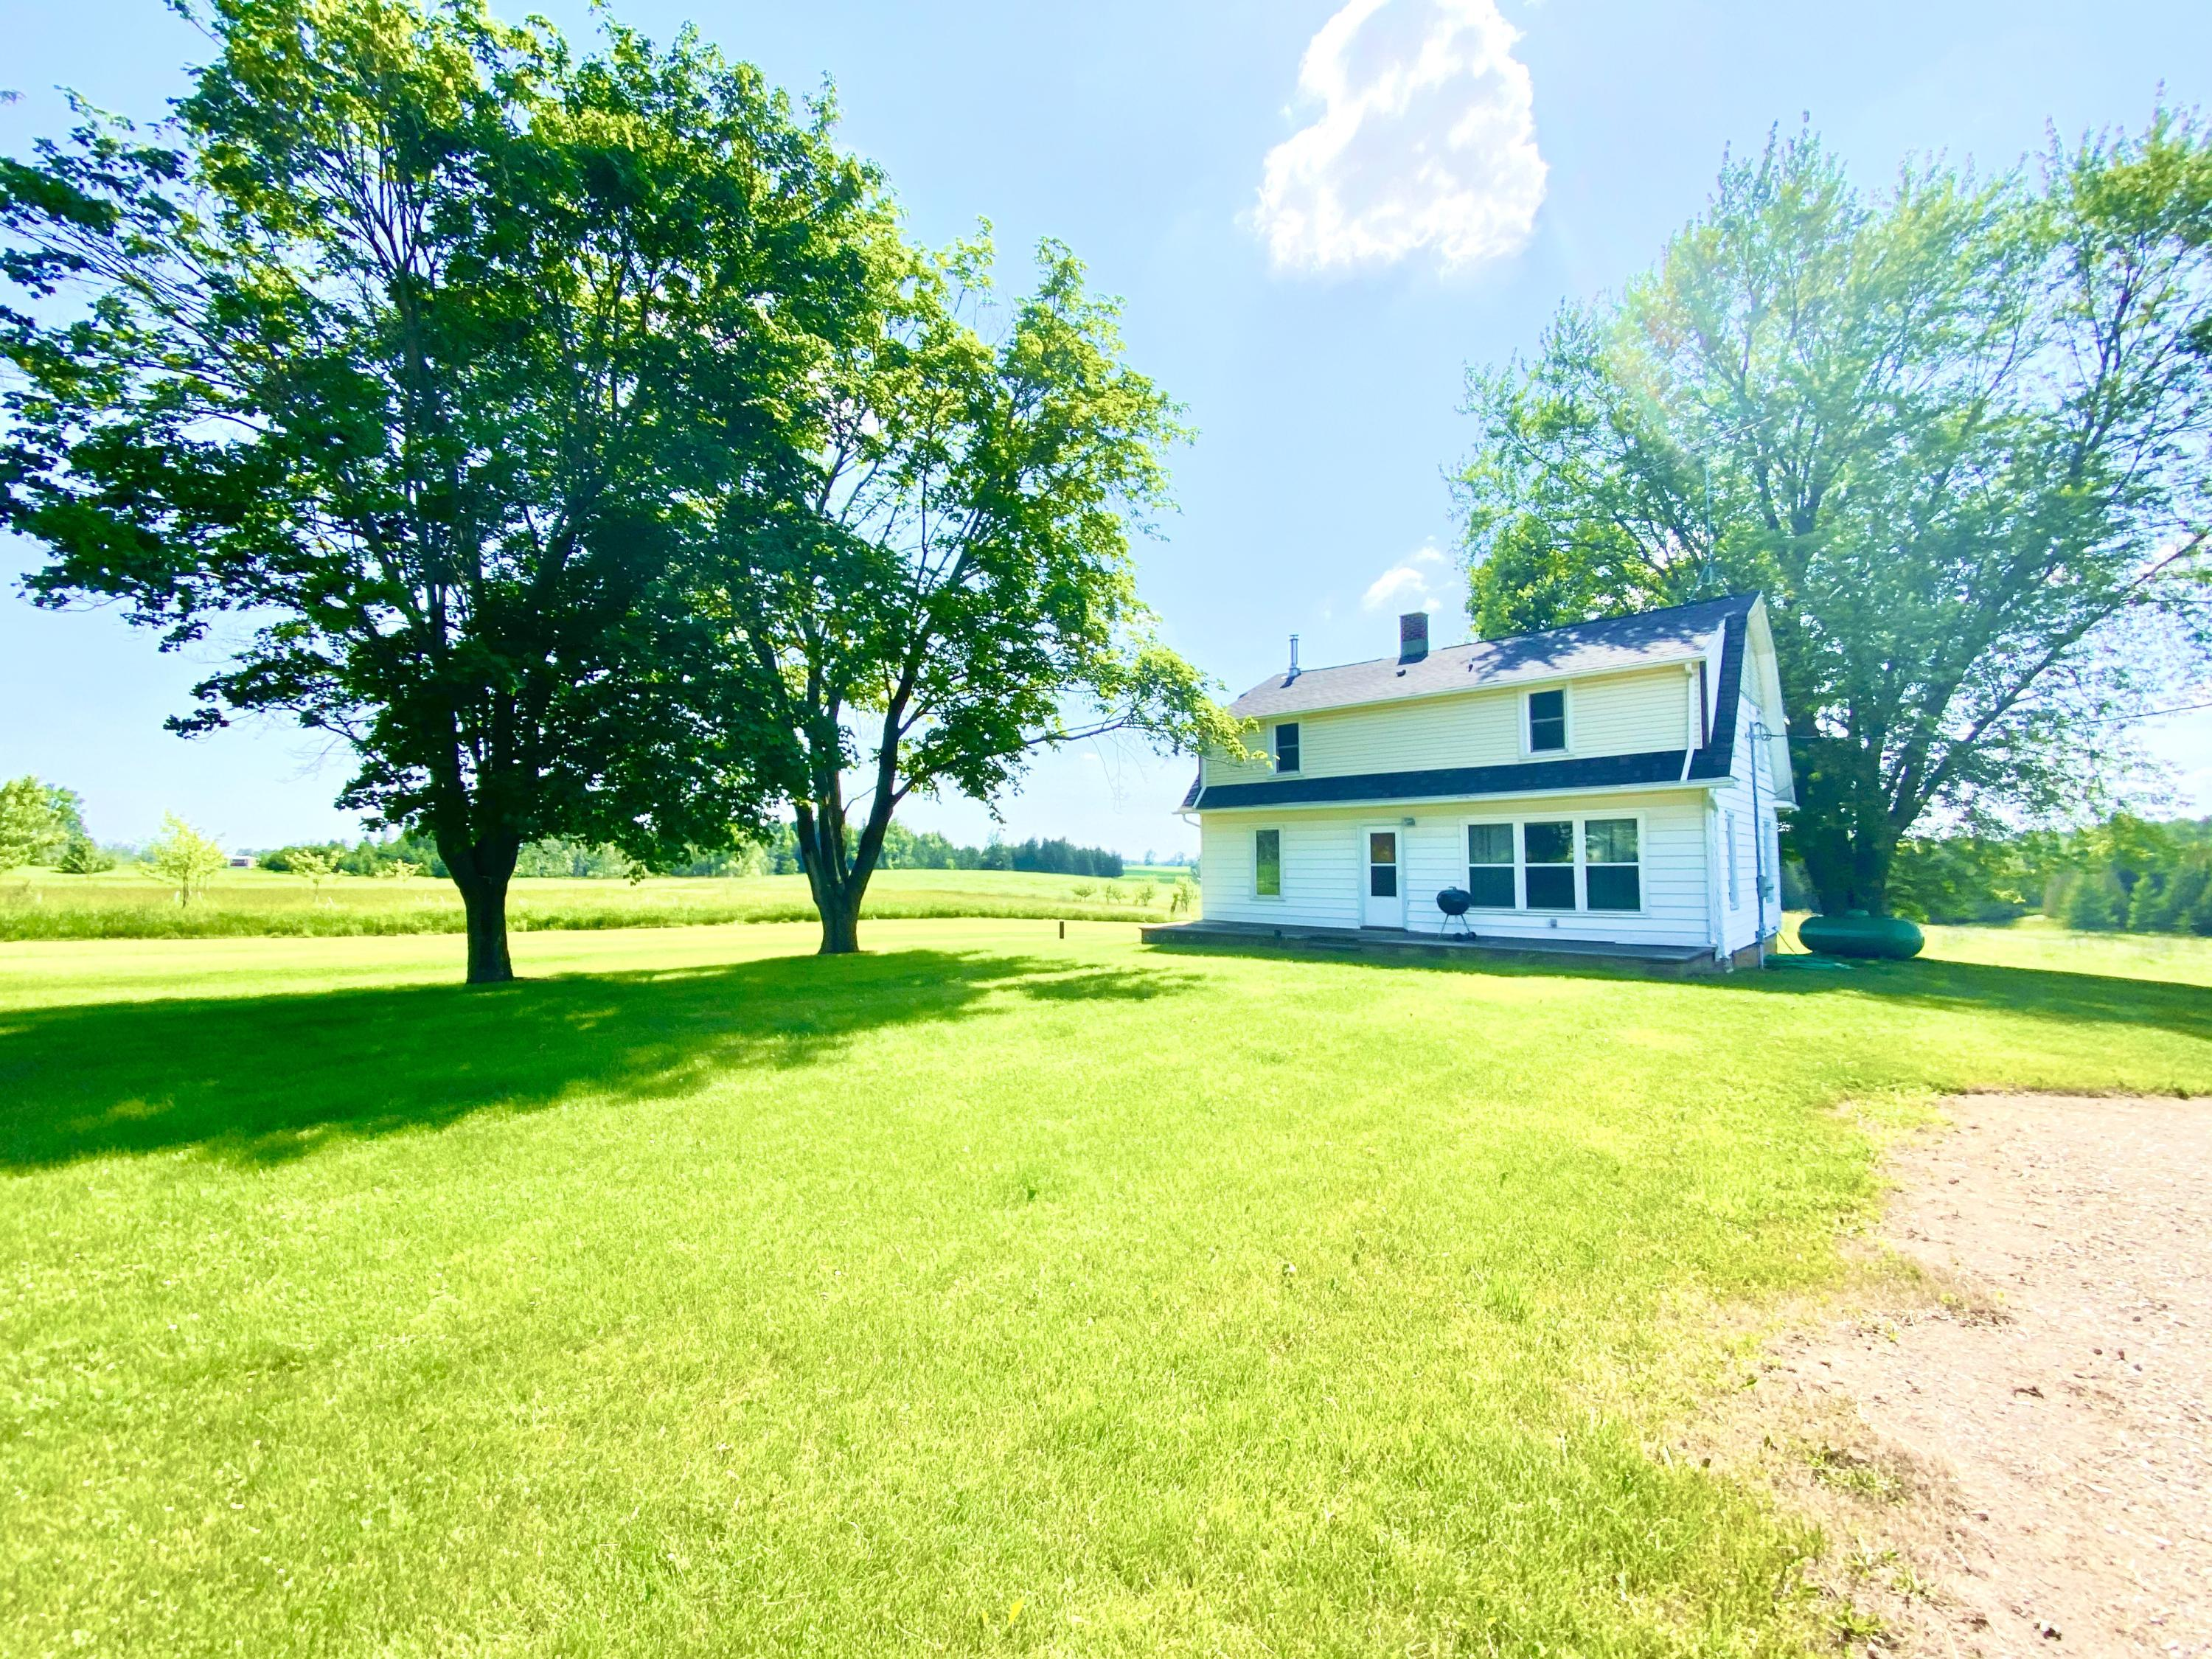 N9063 Chartre, Stephenson, Michigan 49887, 5 Bedrooms Bedrooms, ,2 BathroomsBathrooms,Single-family,For Sale,Chartre,1714673